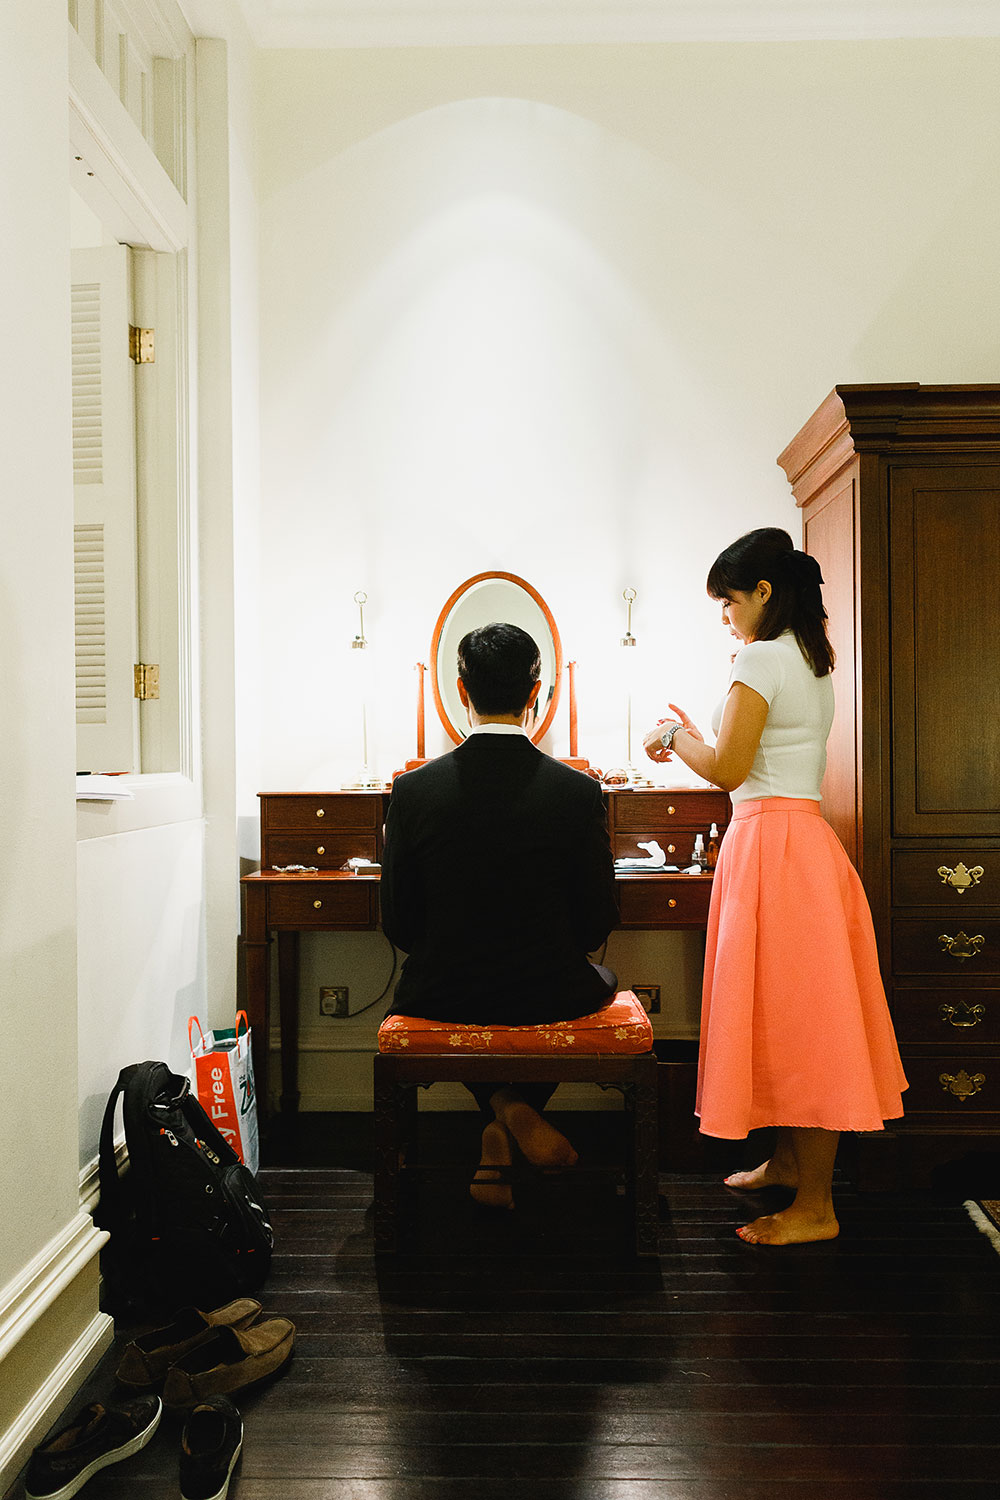 Singaore-Raffles-Hotel-Wedding-groom-mirror